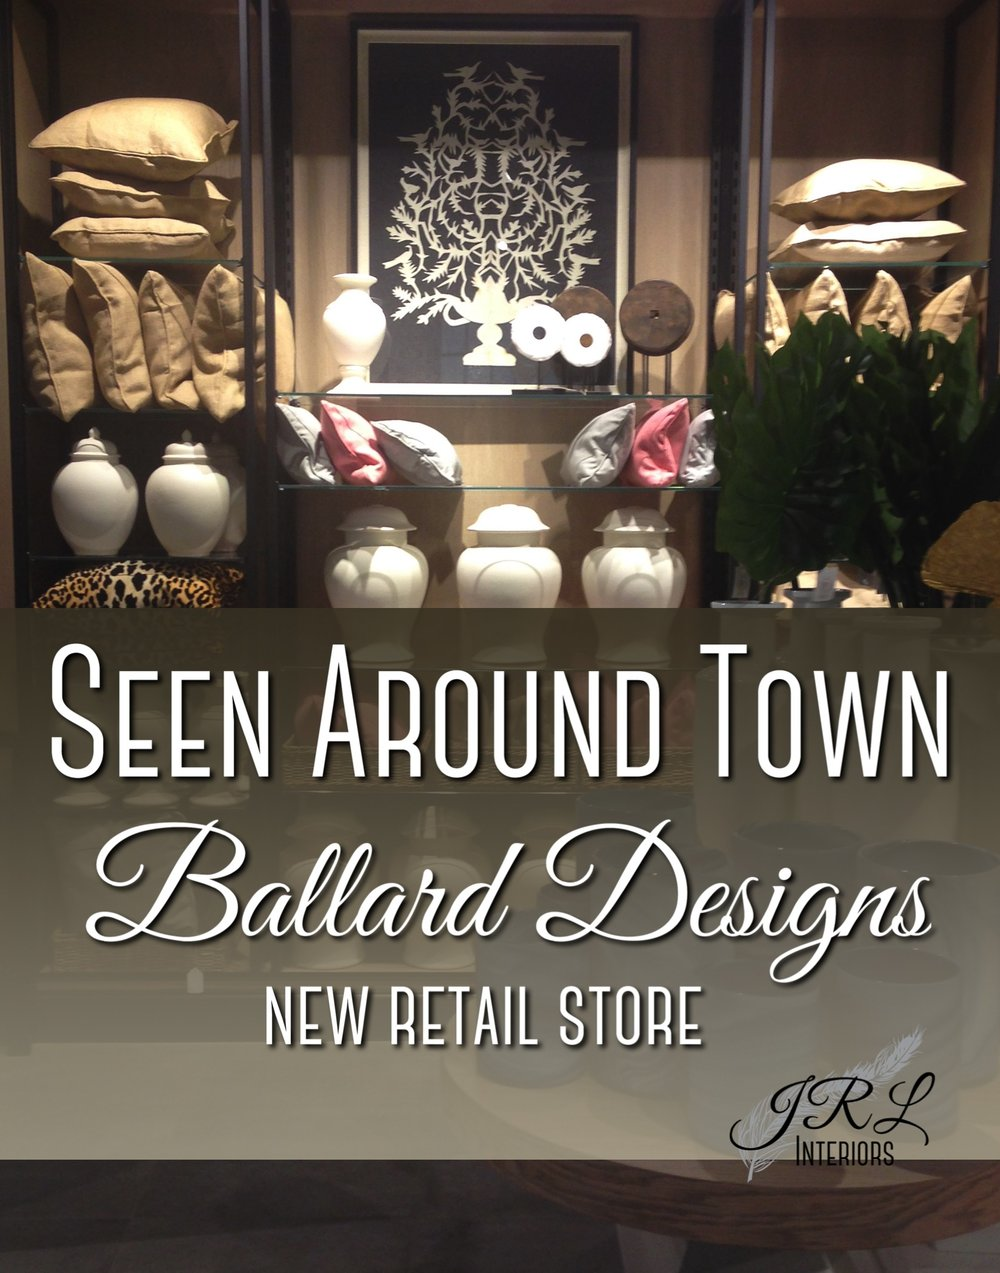 Seen-Around-Town-Ballard-Designs.jpg